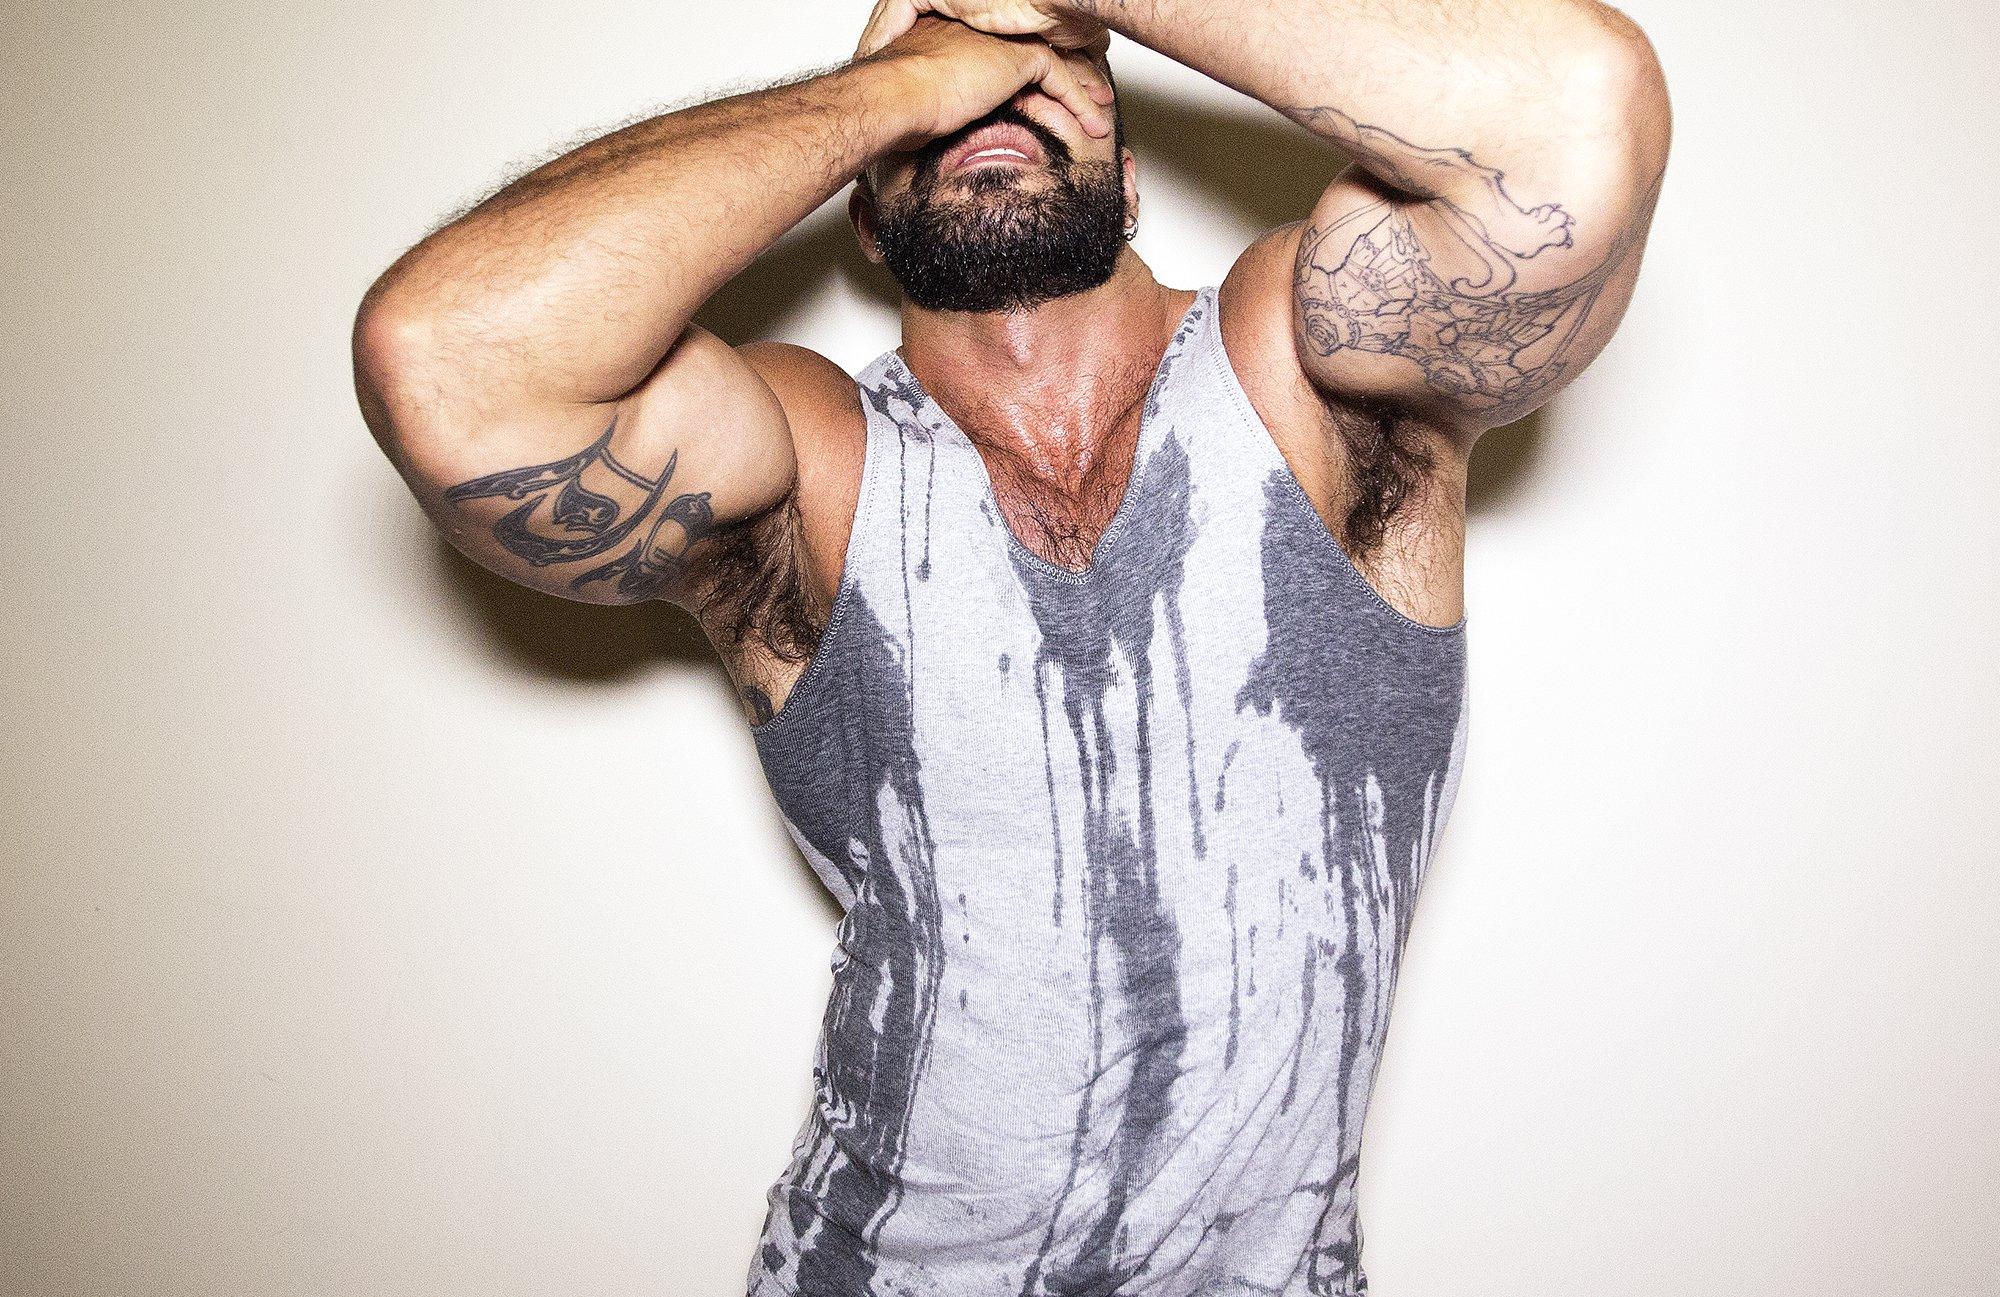 RT @theFLEXwebsite: Want @RoganRichards jizz stained clothes? Buy his tanktop today https://t.co/zdORed0ySh https://t.co/GEC5PKfecm